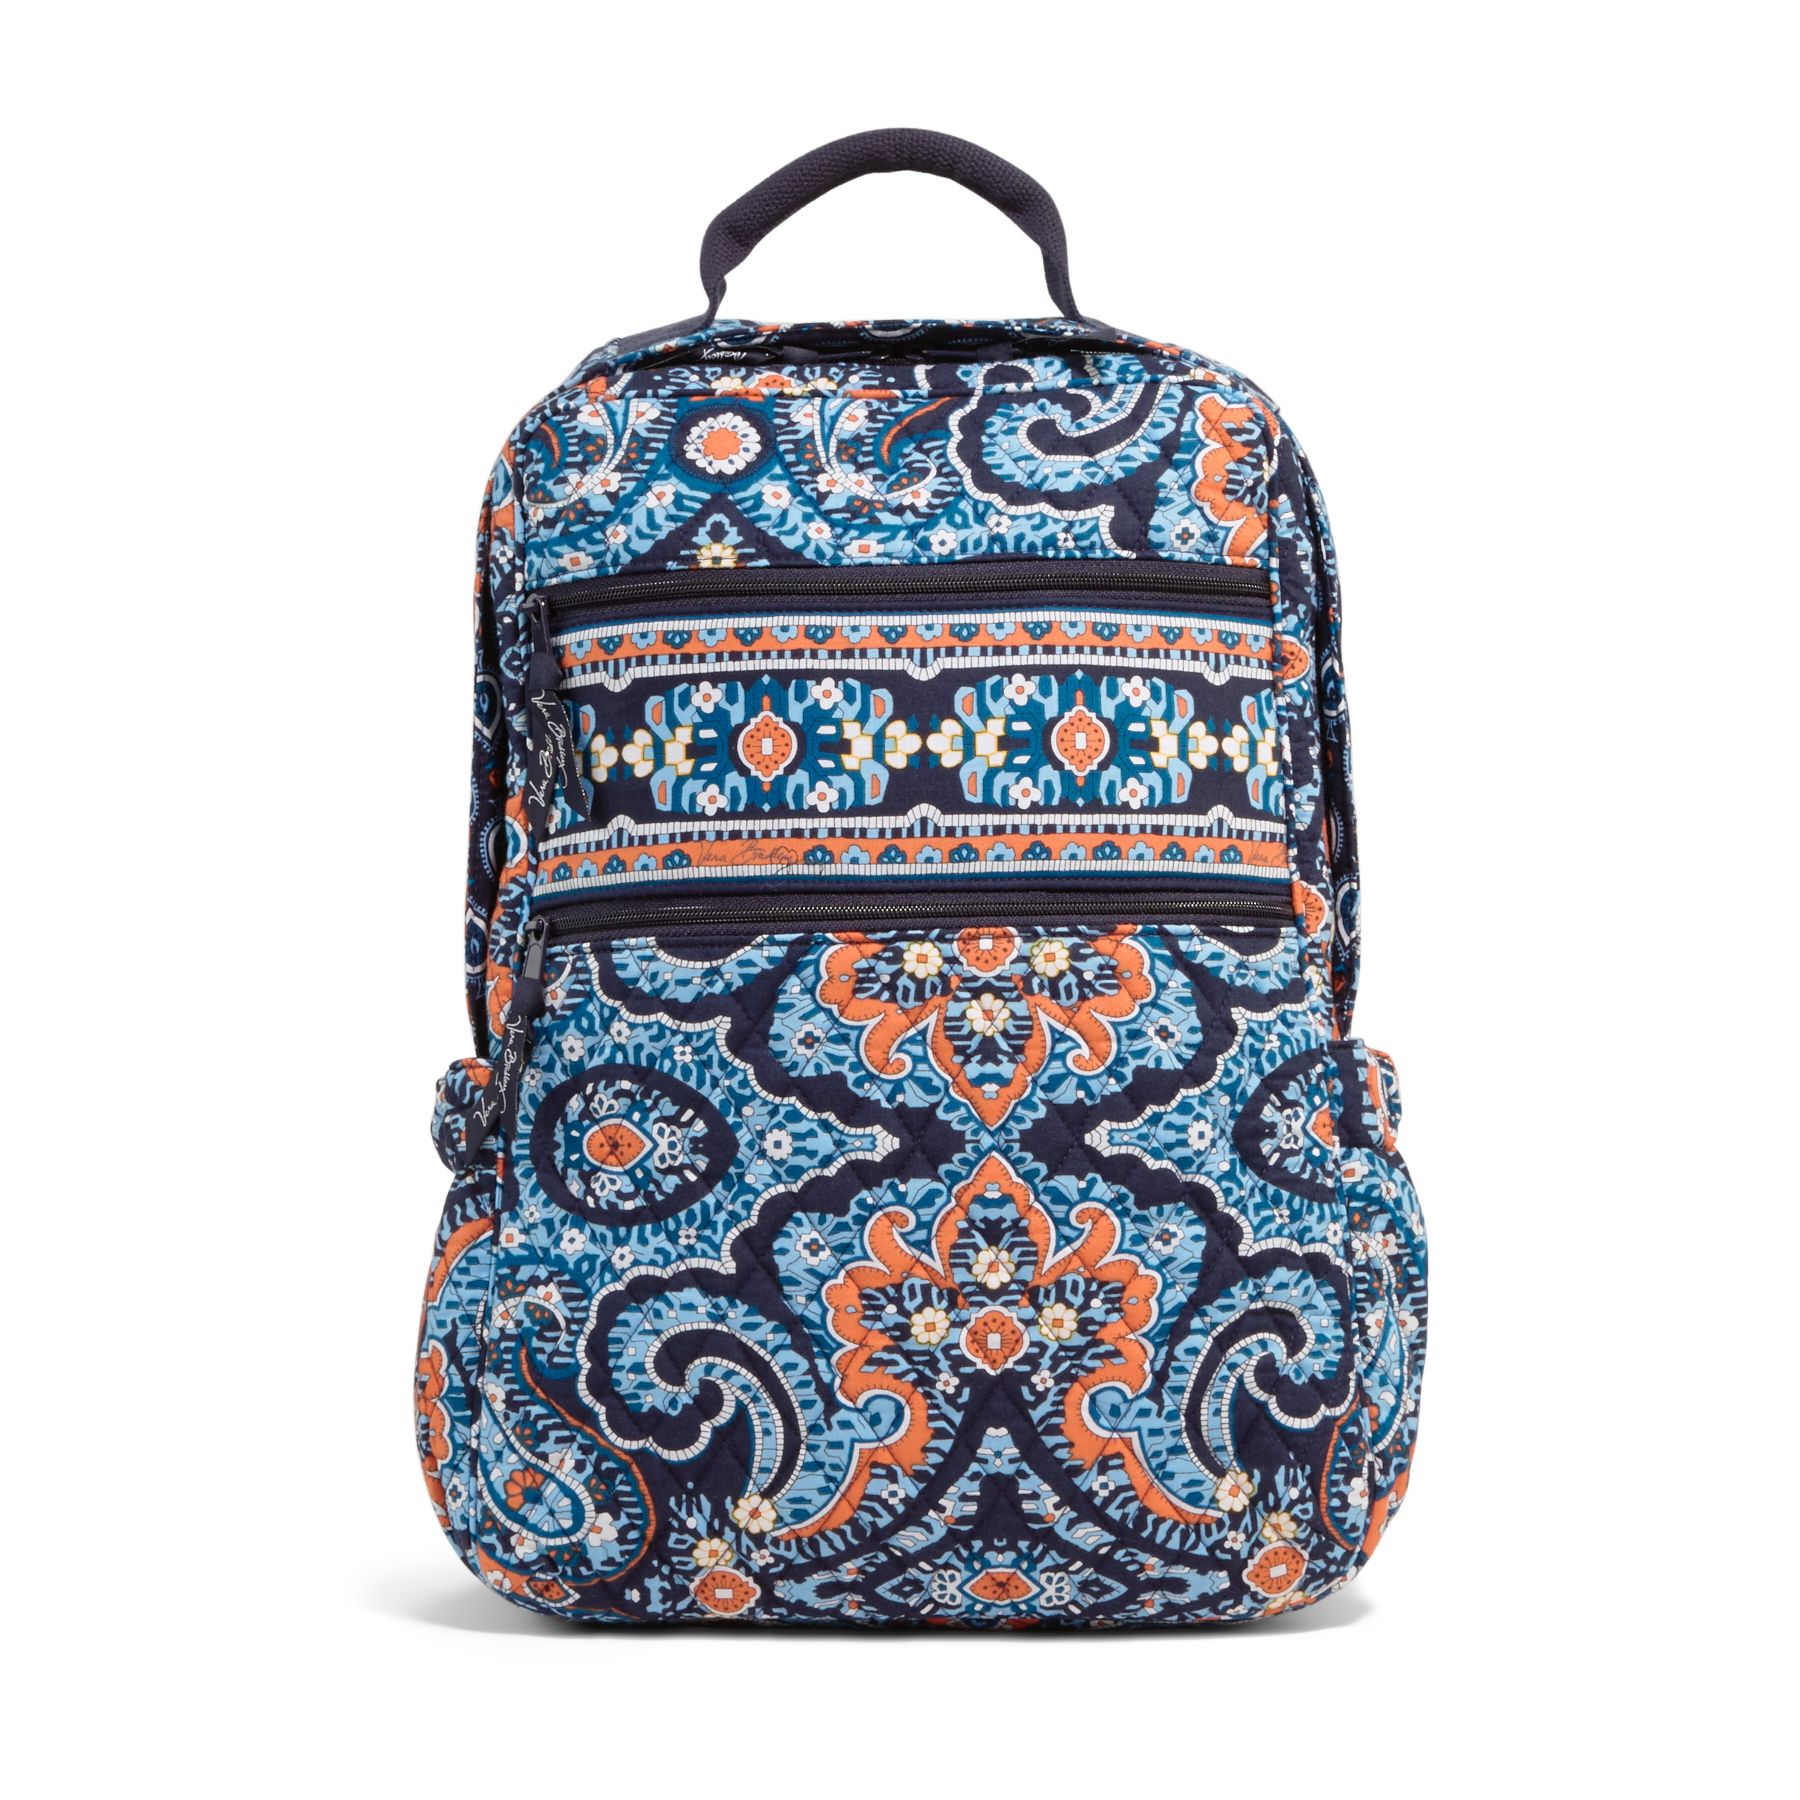 Vera Bradley Tech Backpack in Marrakesh